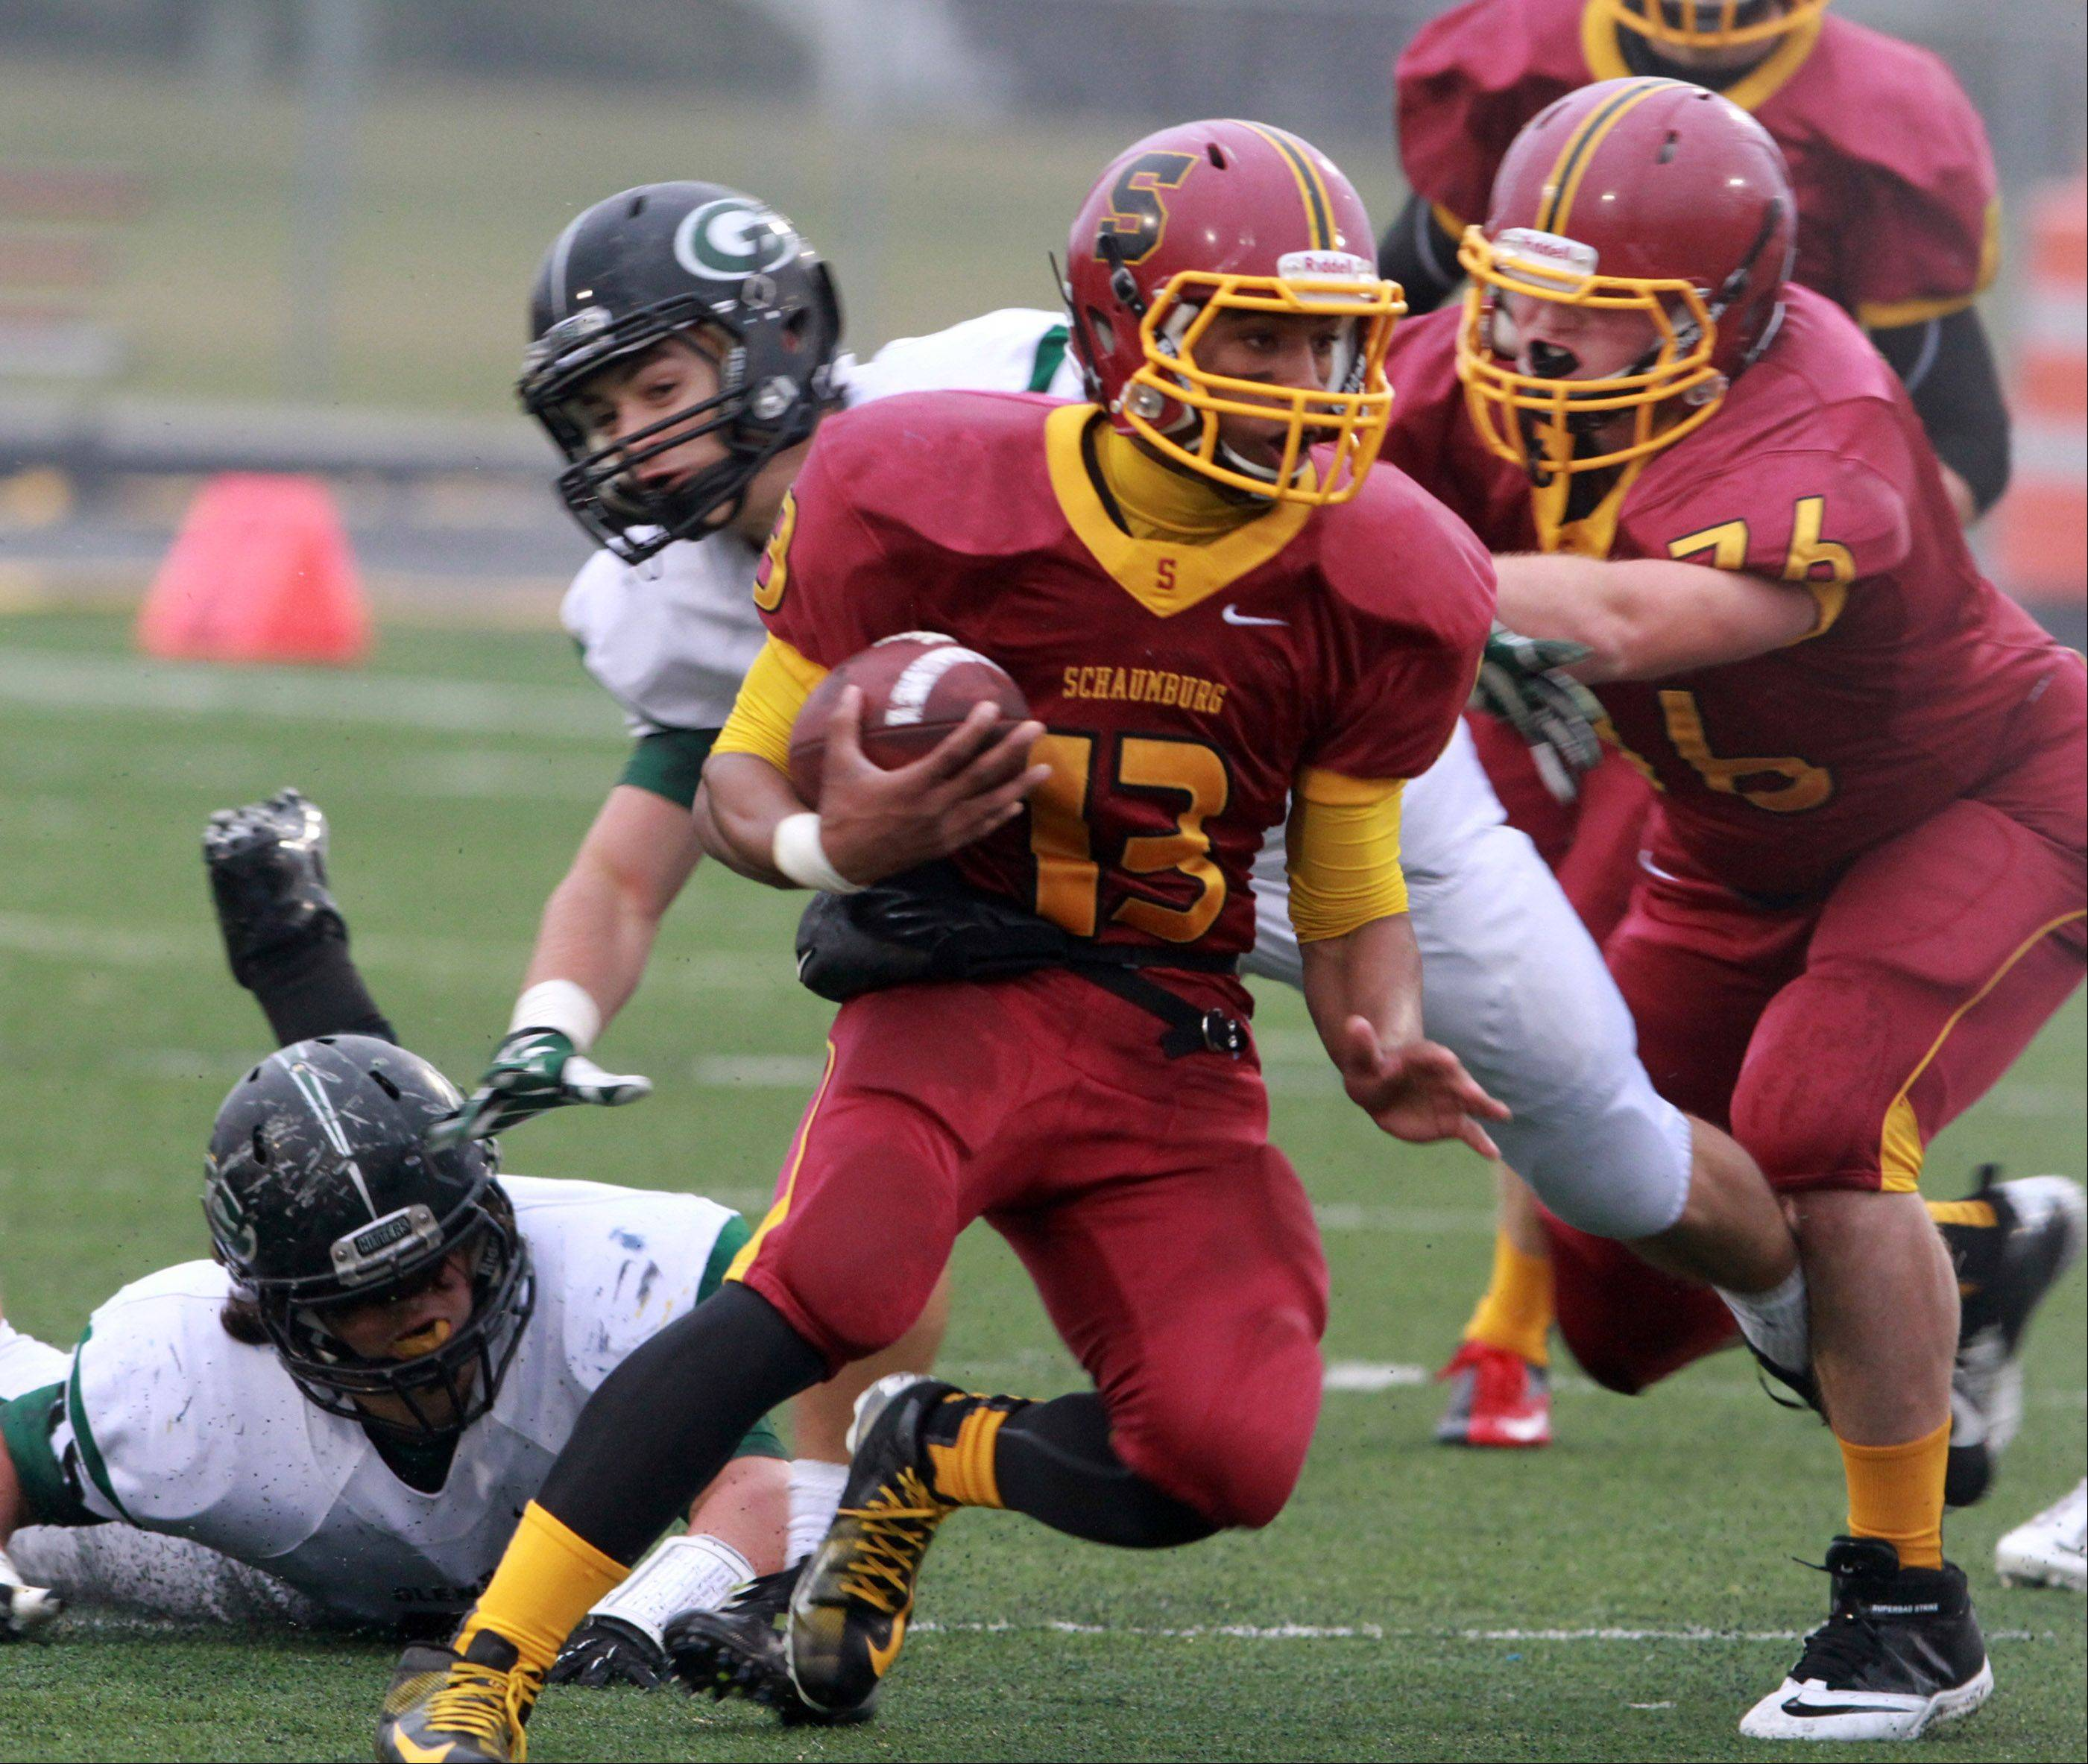 Schaumburg quarterback Stacey Smith runs the ball against Glenbard West in a quarterfinal playoff game on Saturday in Schaumburg.